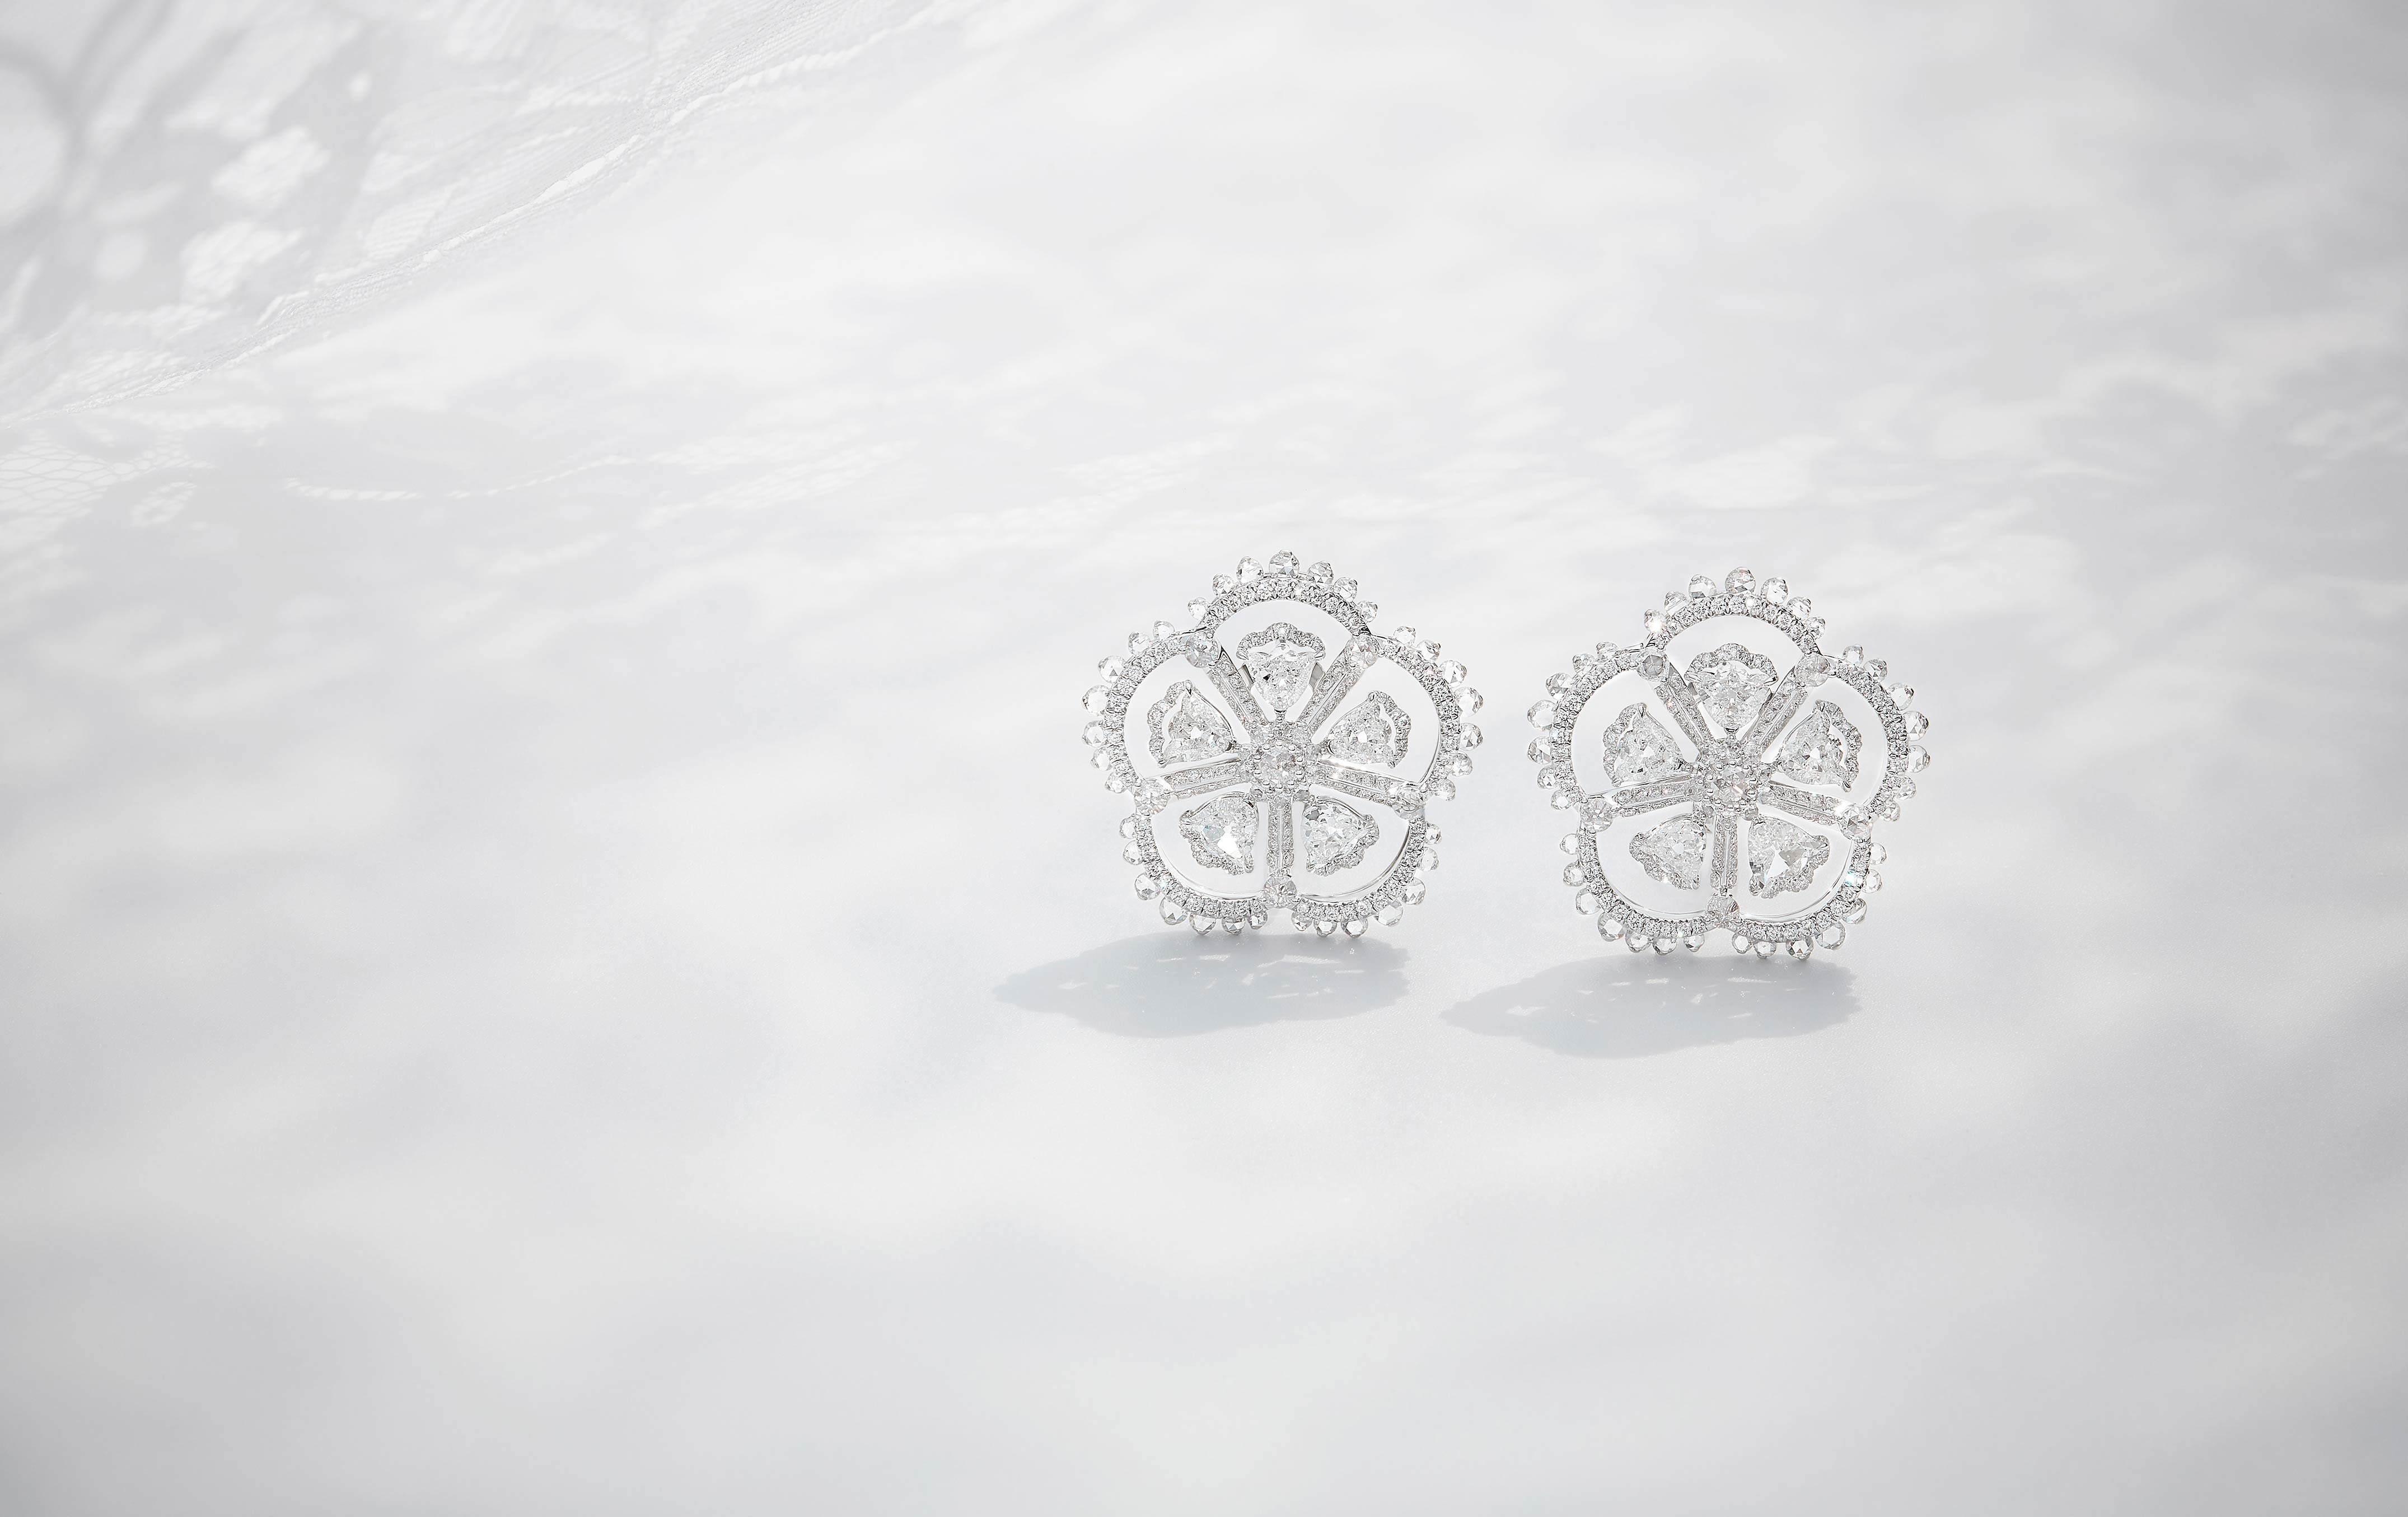 White gold enhances the wistful sheerness of the filigree.